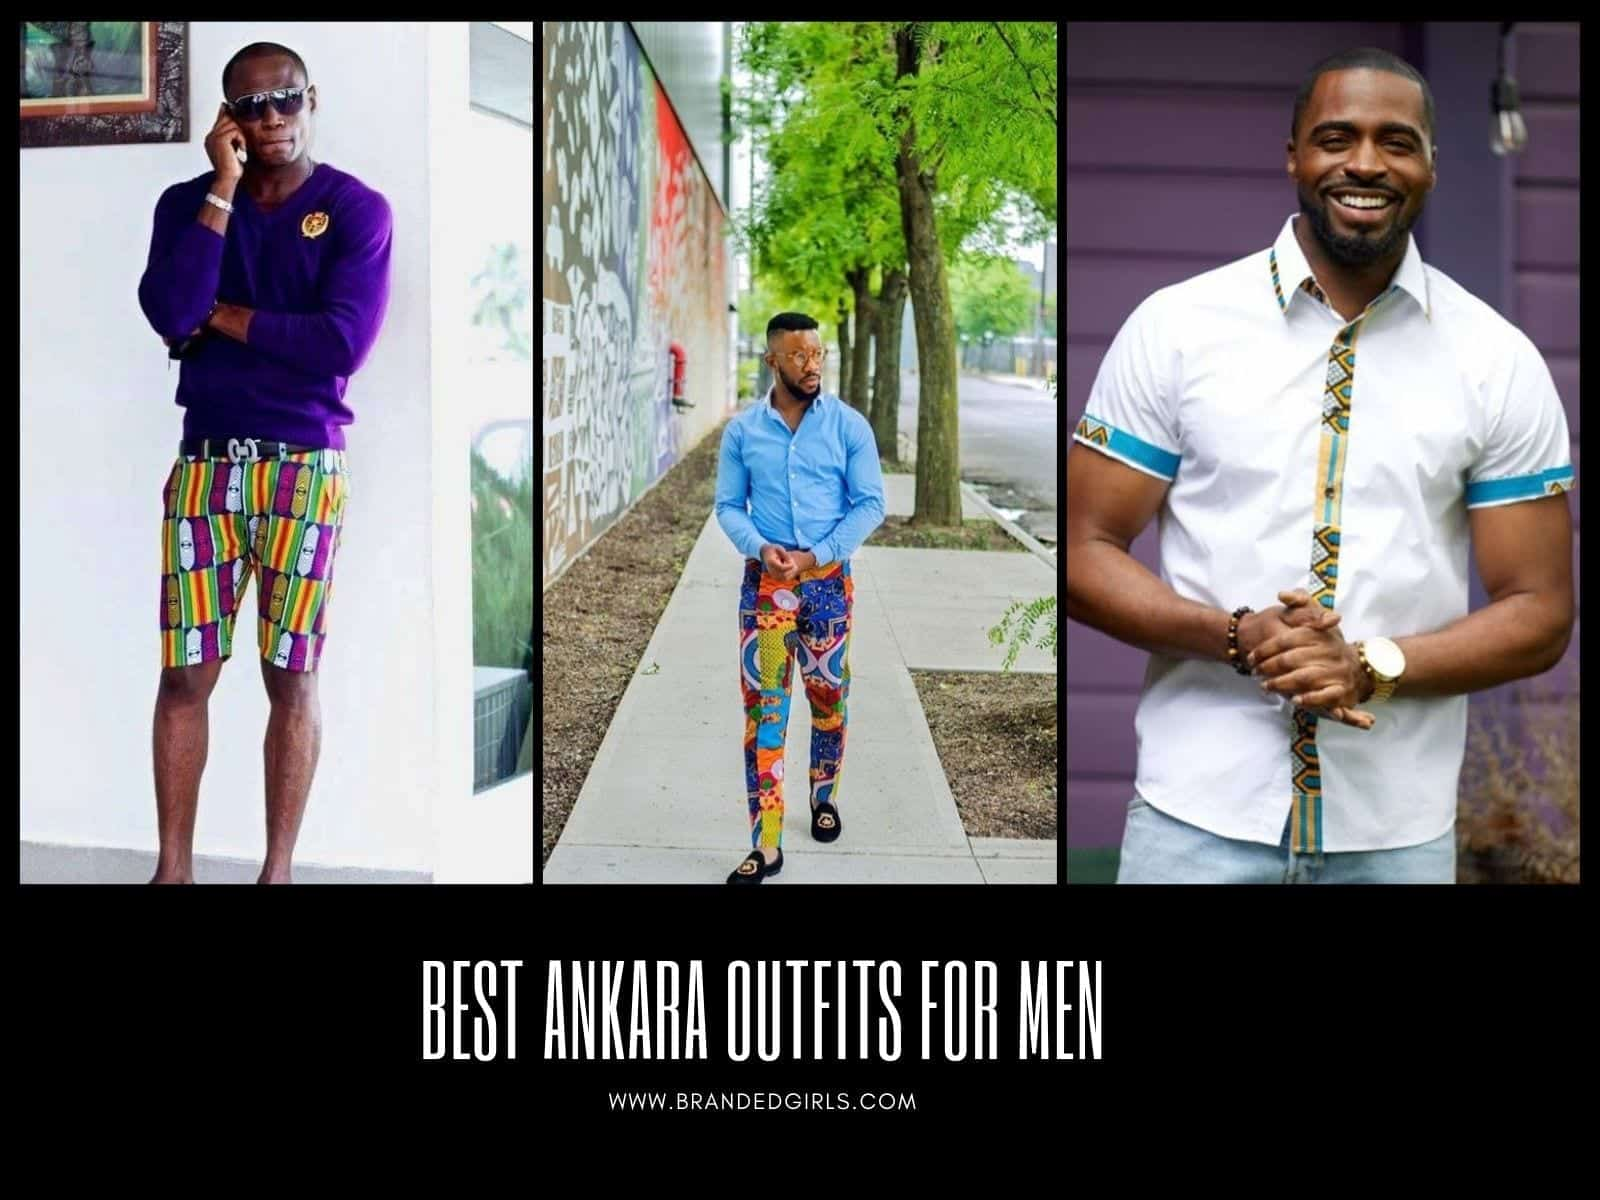 Ankara-Outfits-for-Men Ankara Styles for Guys - 22 Best Ankara Outfits for Men 2019